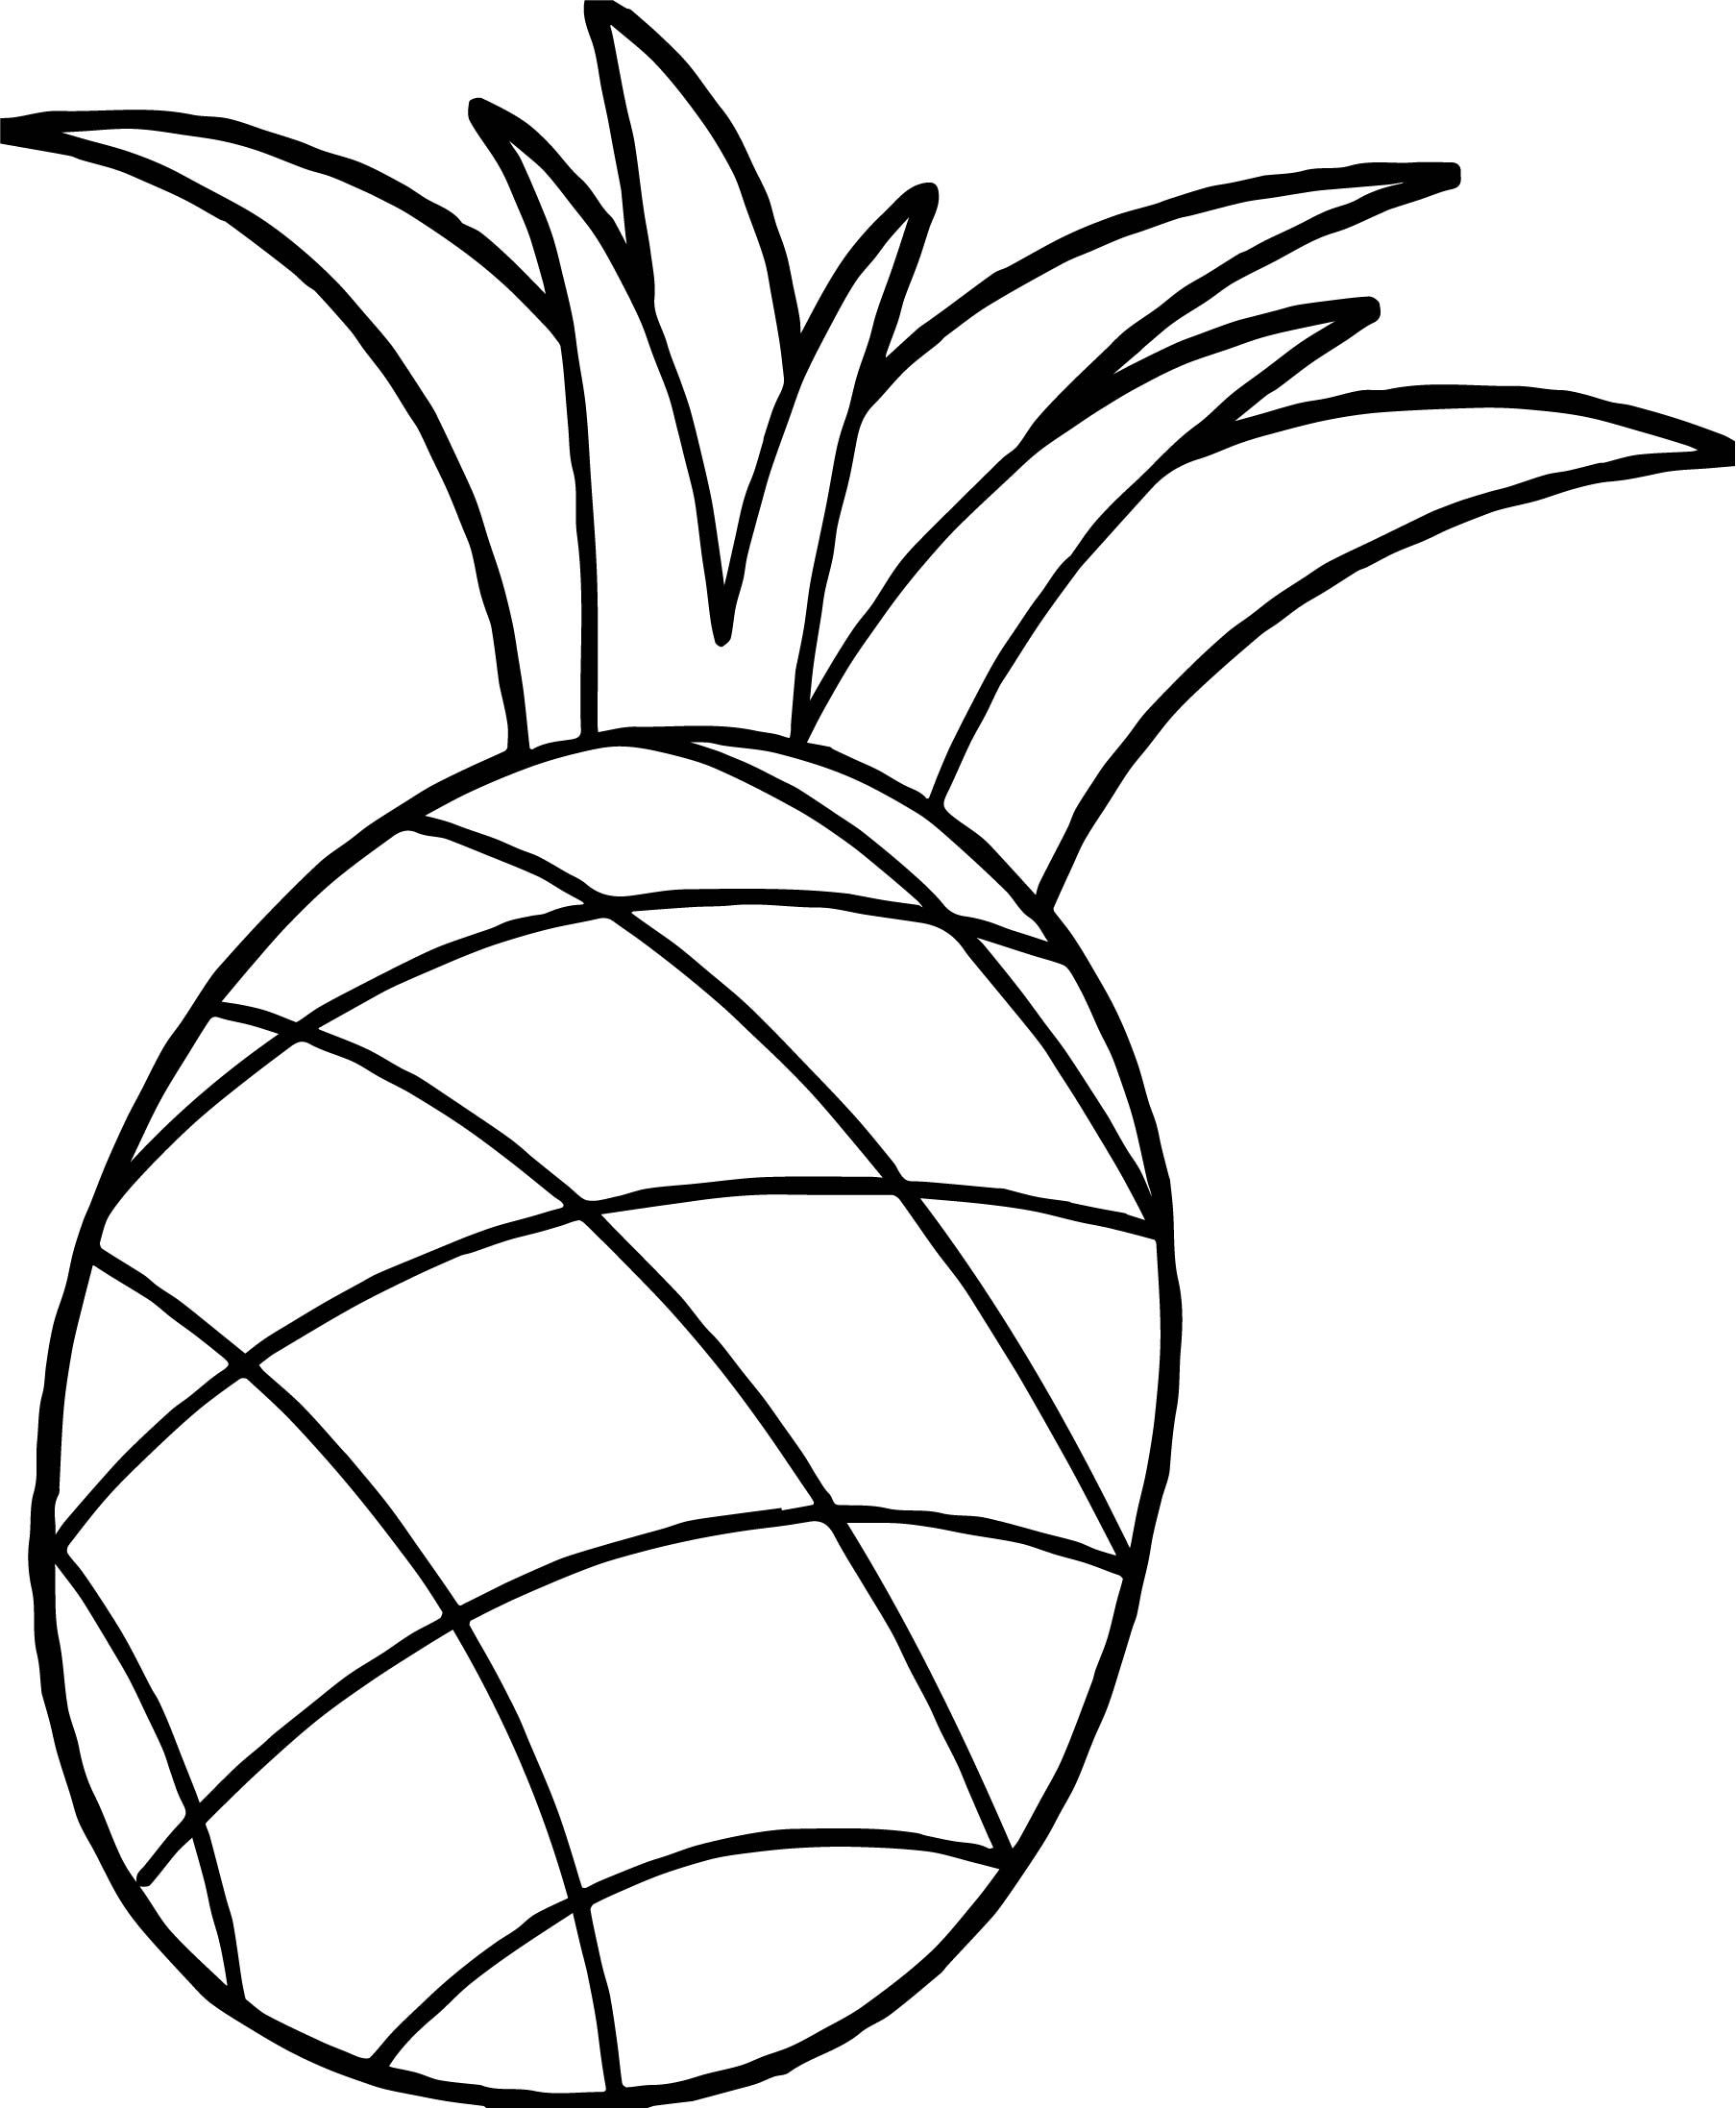 Awesome One Pineapple Coloring Page Pumpkin Coloring Pages Fruit Coloring Pages Vegetable Coloring Pages